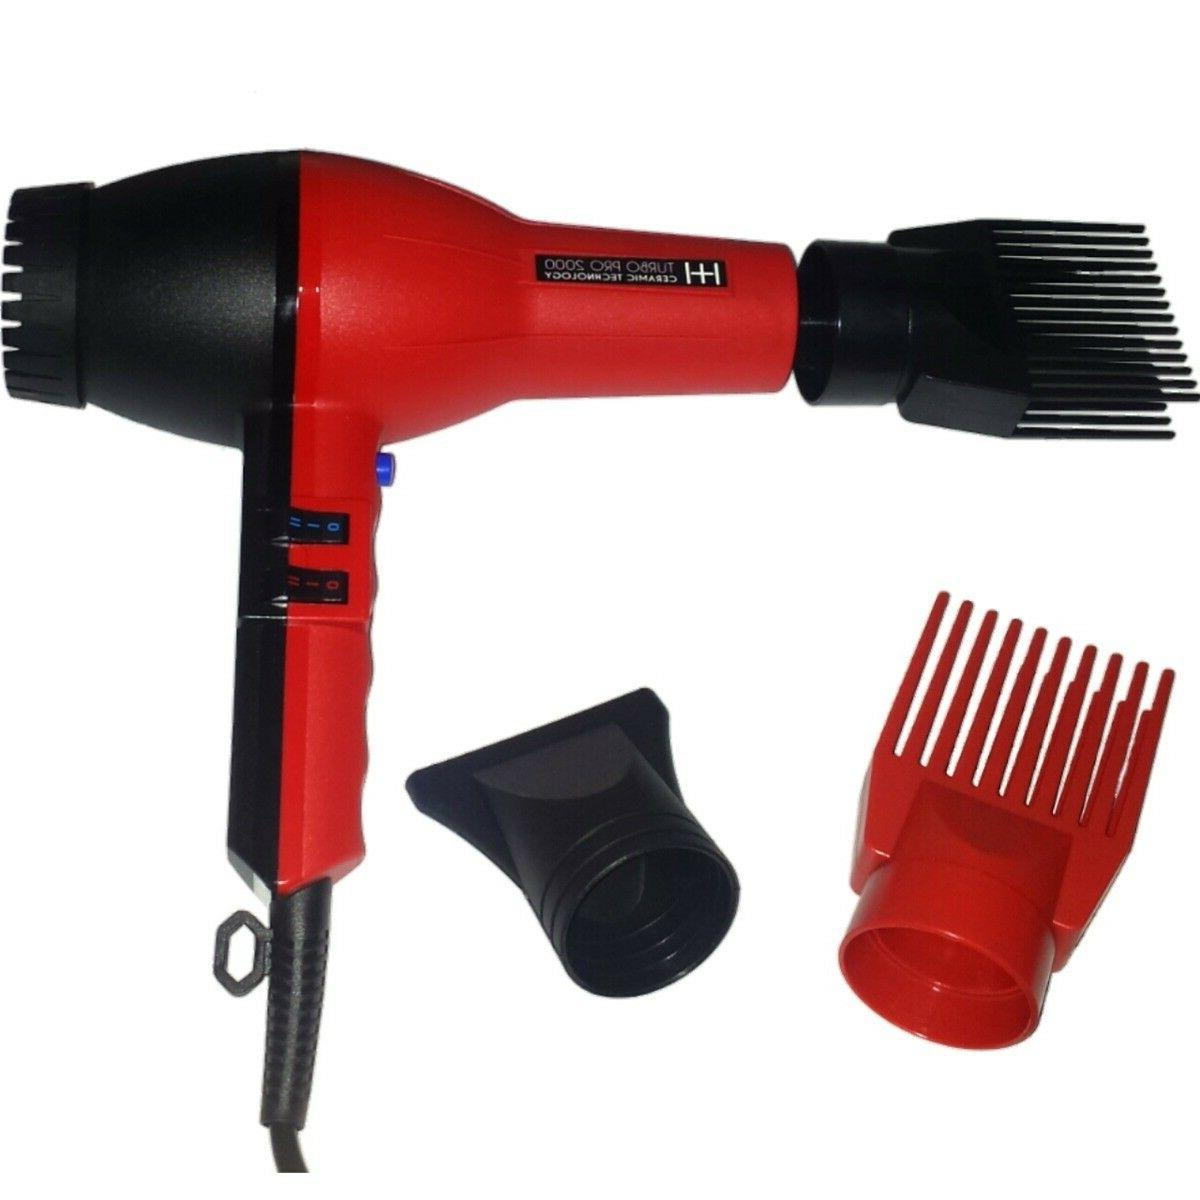 BLOW DRYER, & HOTTER, TUBO RED, DRYER SALON, NEW